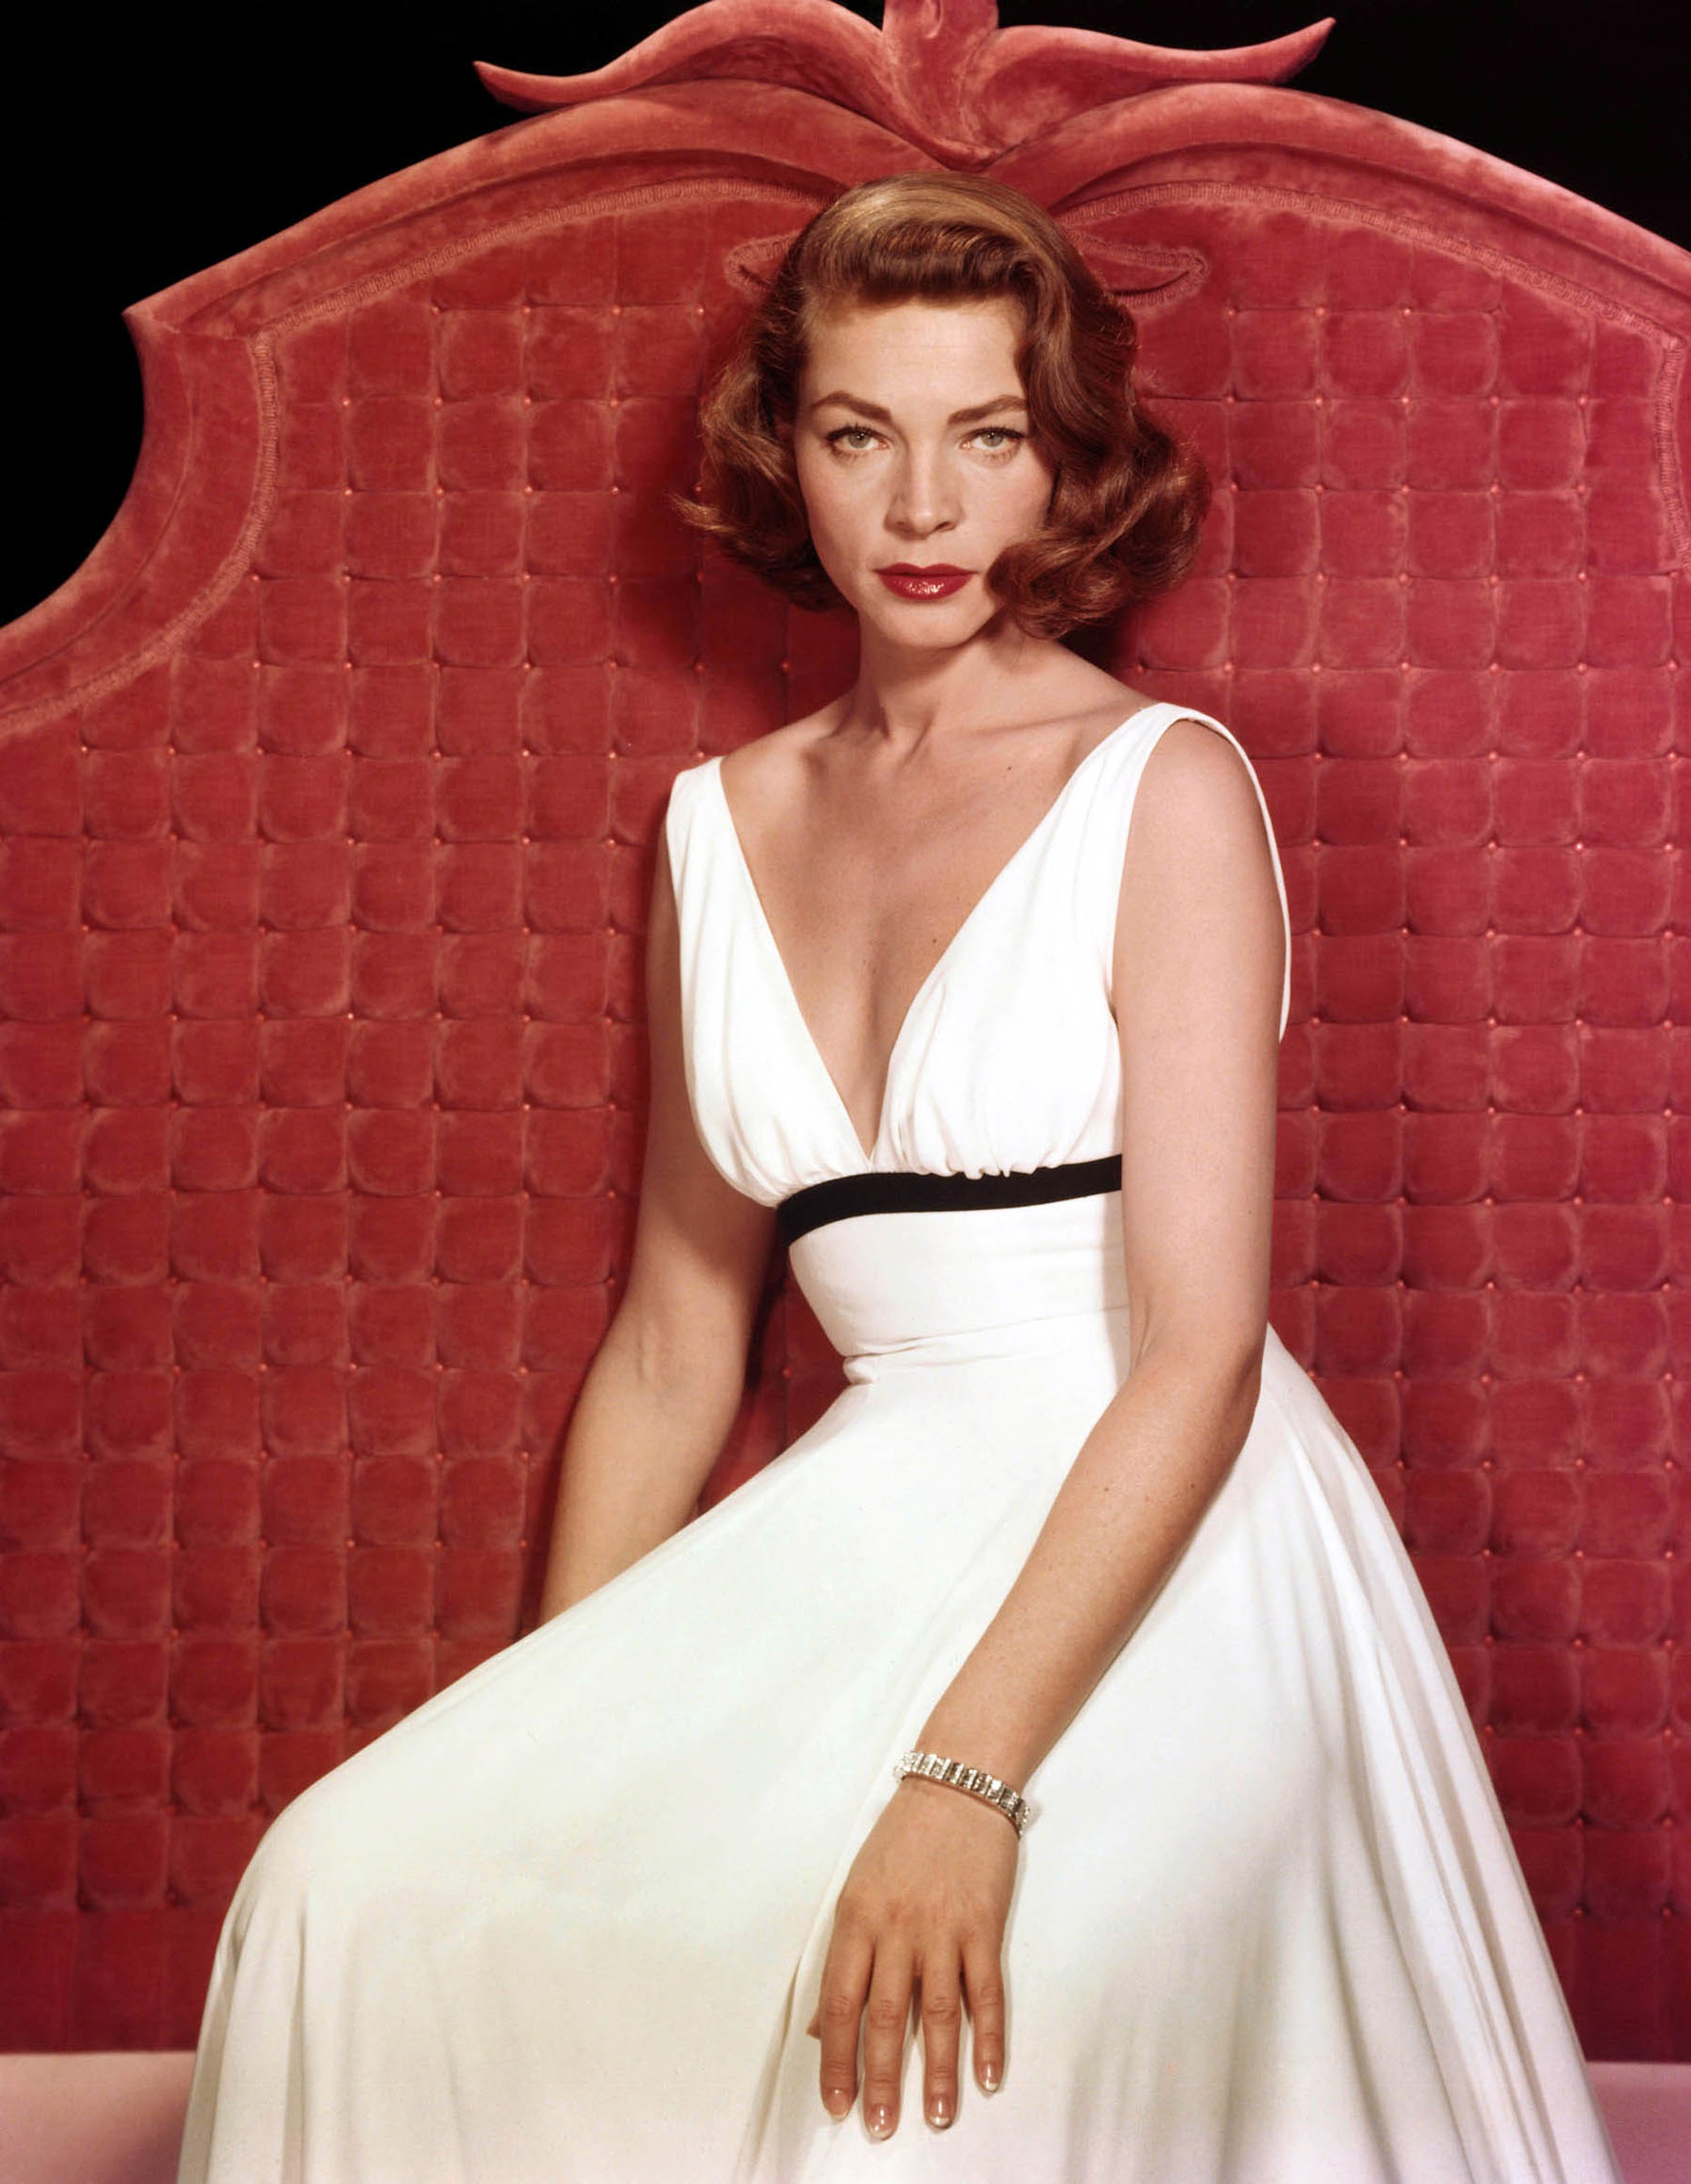 How to marry a millionaire lauren bacall - photo#19